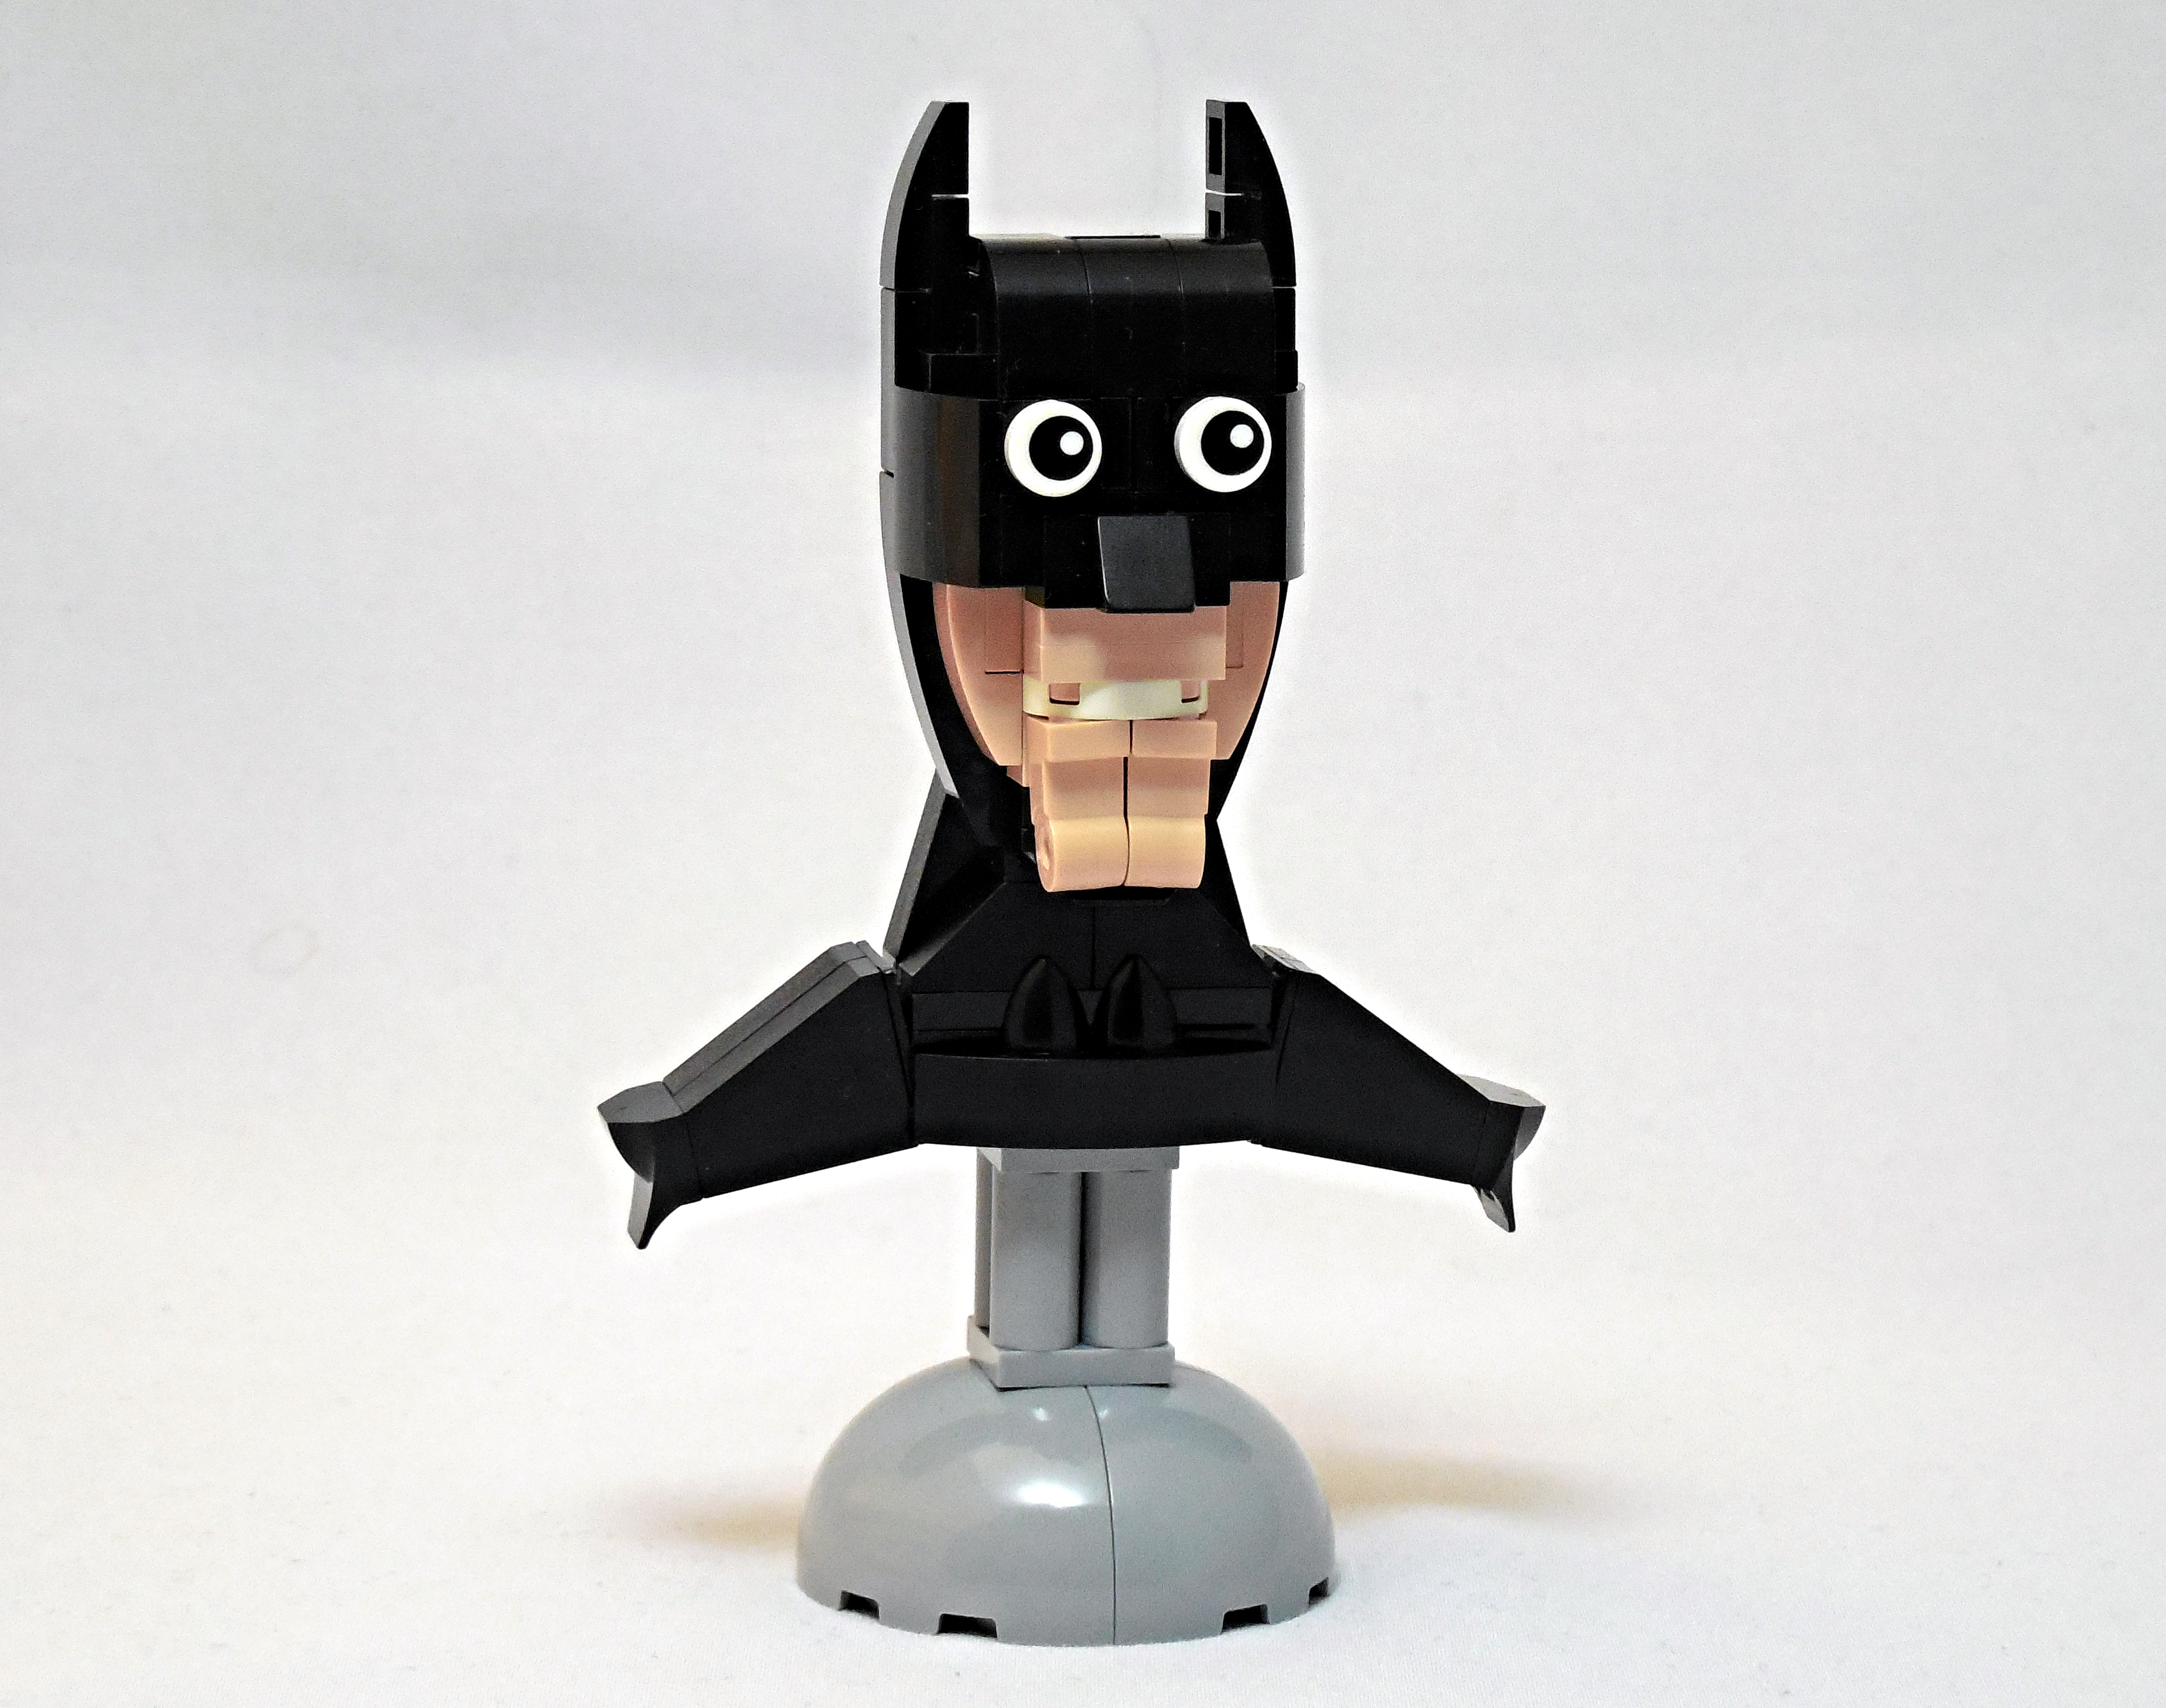 LEGO® MOC by Vitreolum: The Batfleck Bust